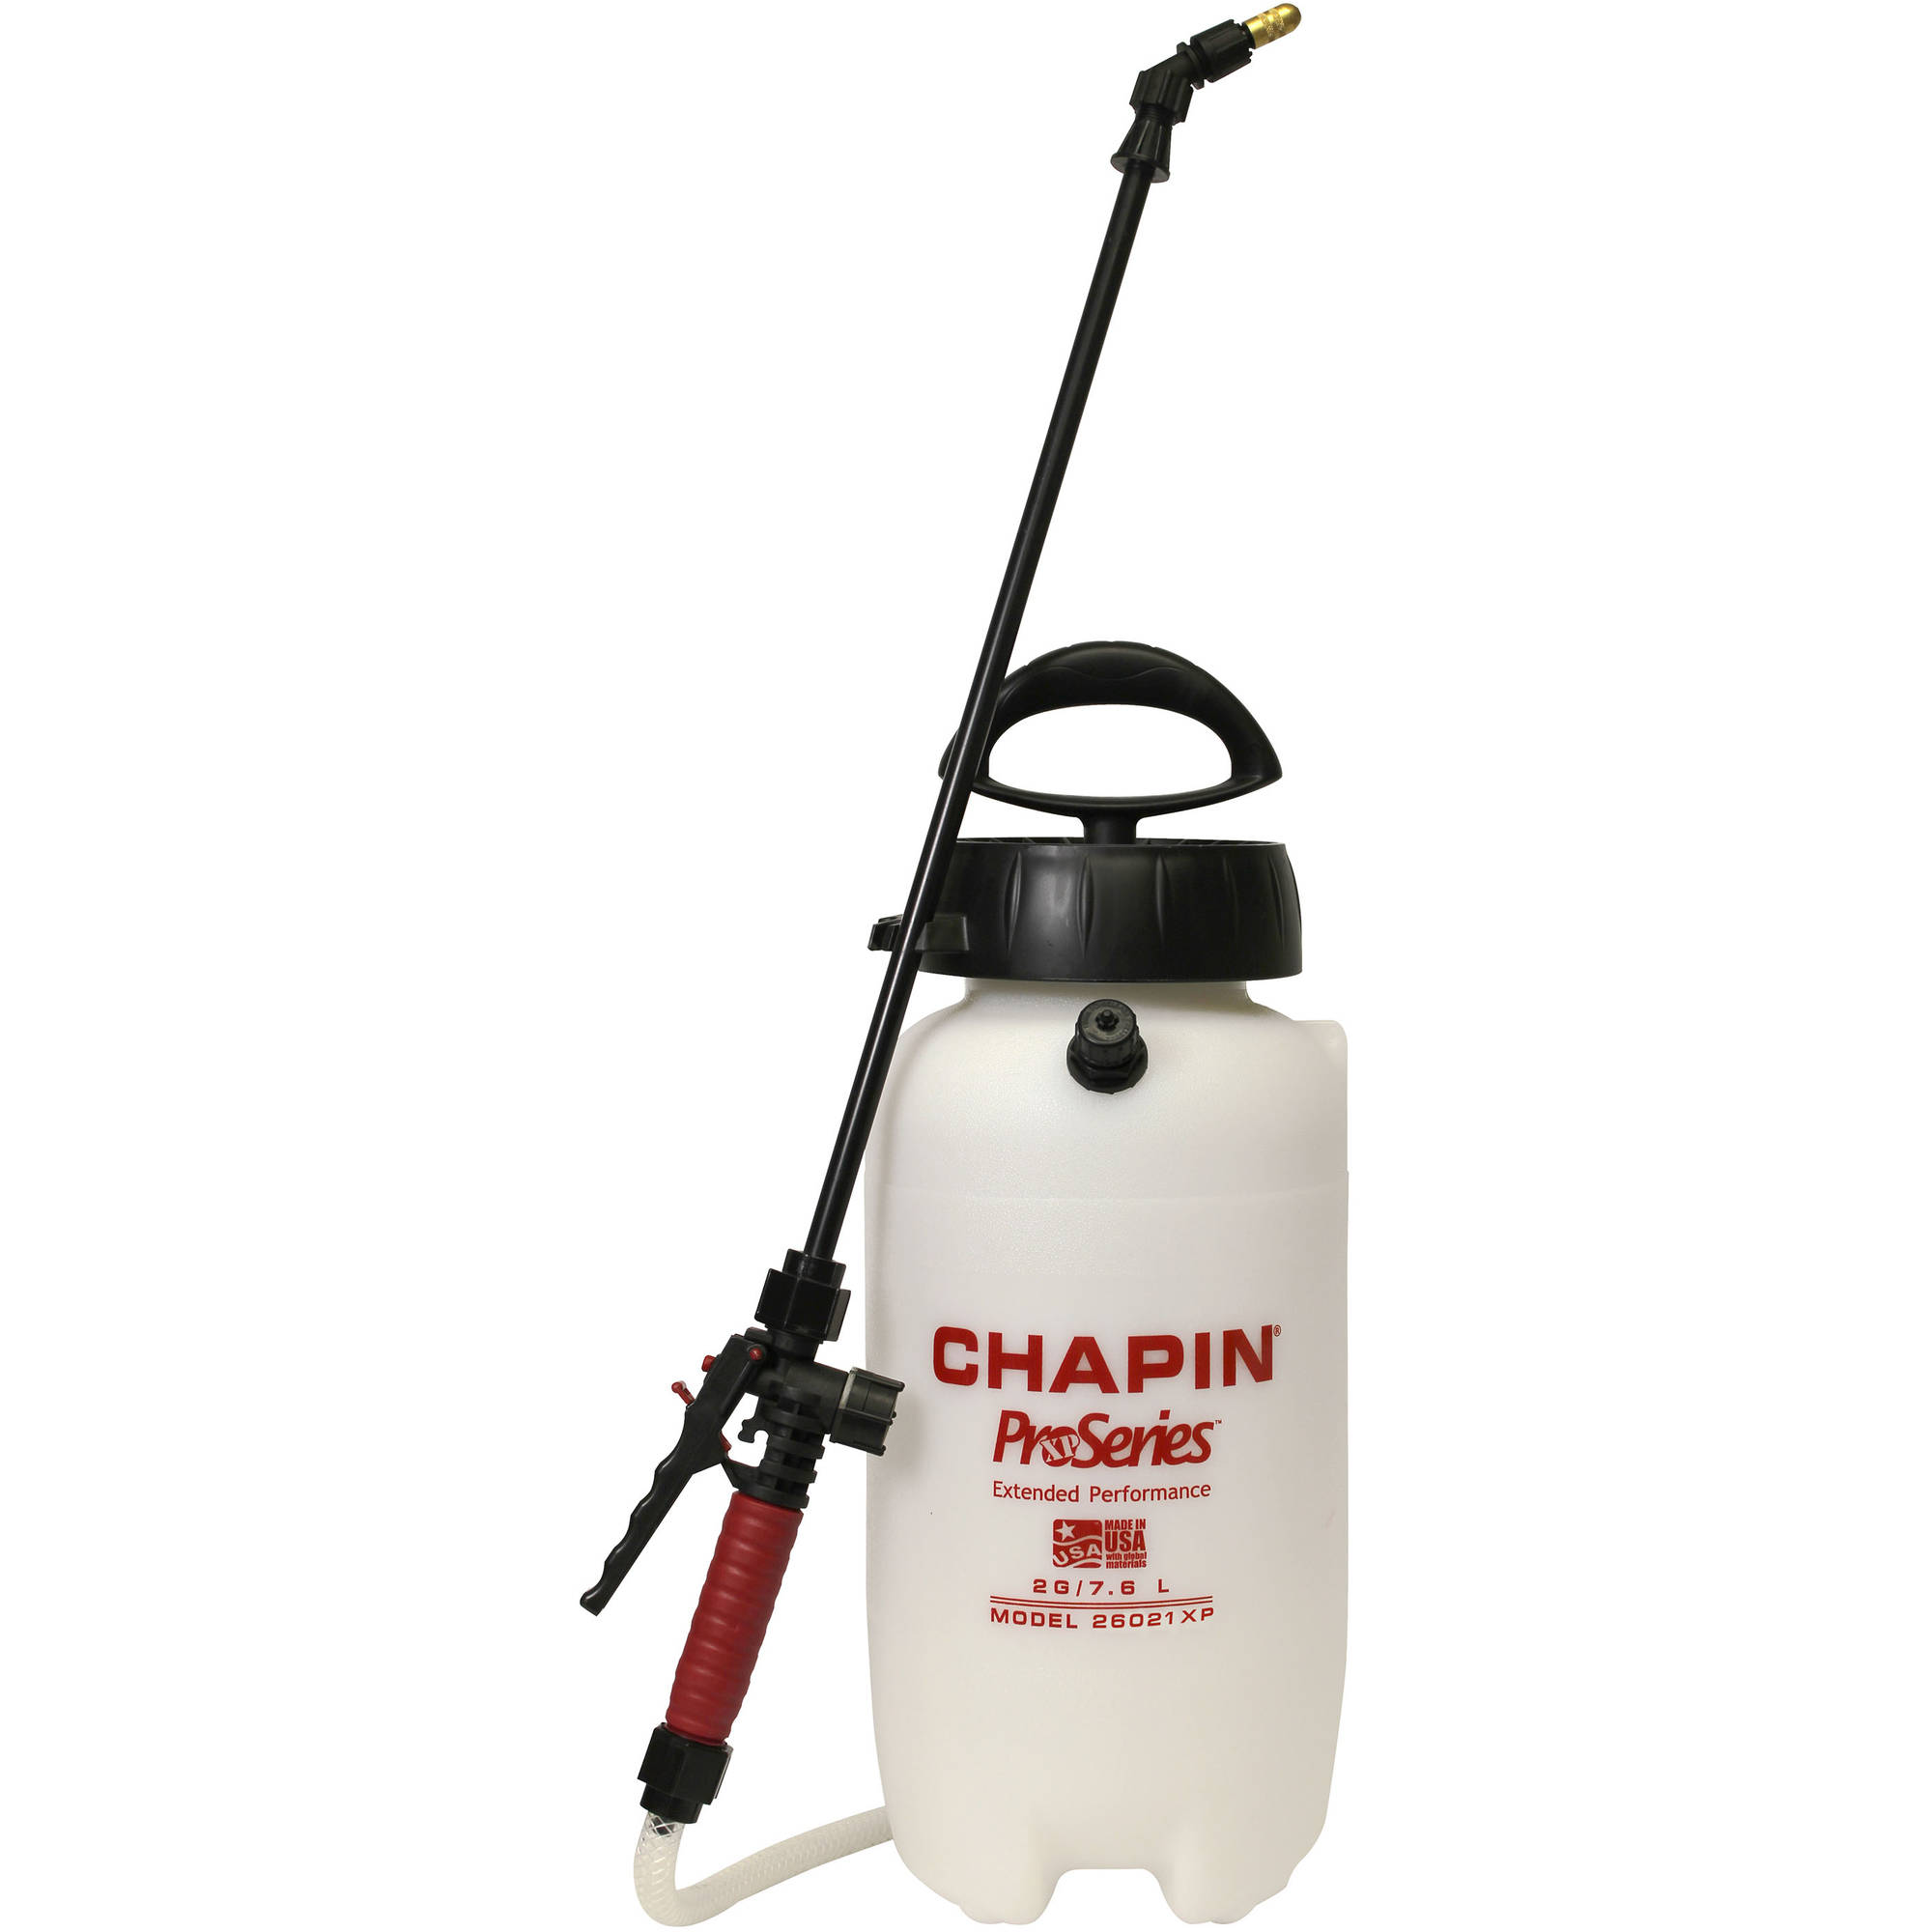 Chapin 26021XP 2-Gallon ProSeries Extended Performance Poly Sprayer